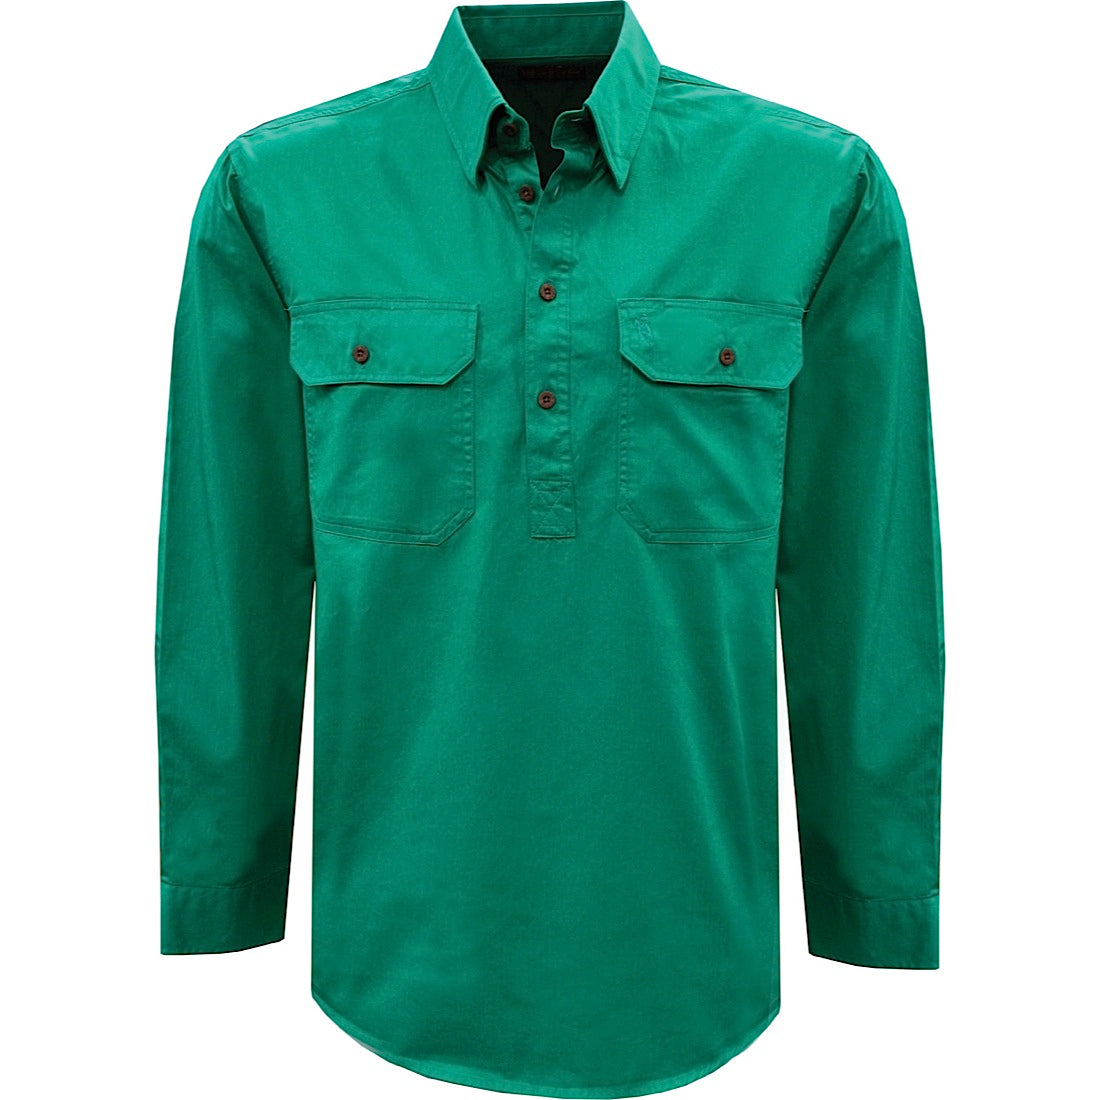 Thomas Cook Light Drill 1/2 Plkt L/S 2 Pocket Shirt Bright Green